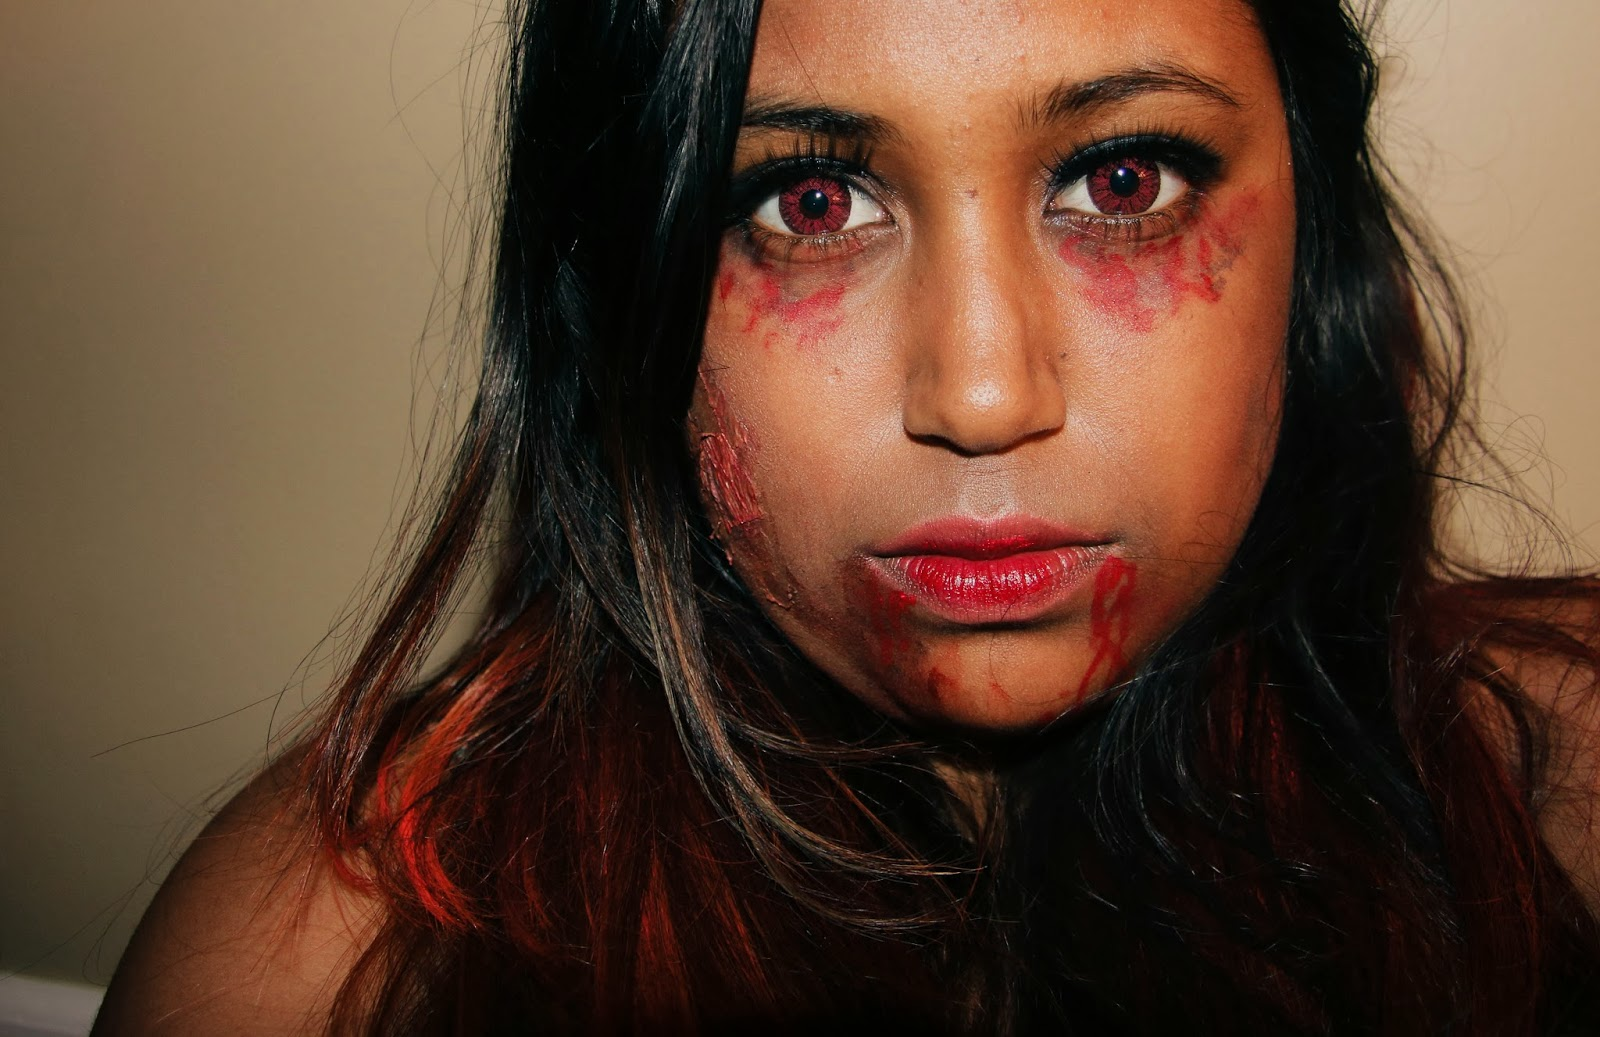 halloween makeup - elena gilbert from the vampire diaries inspired